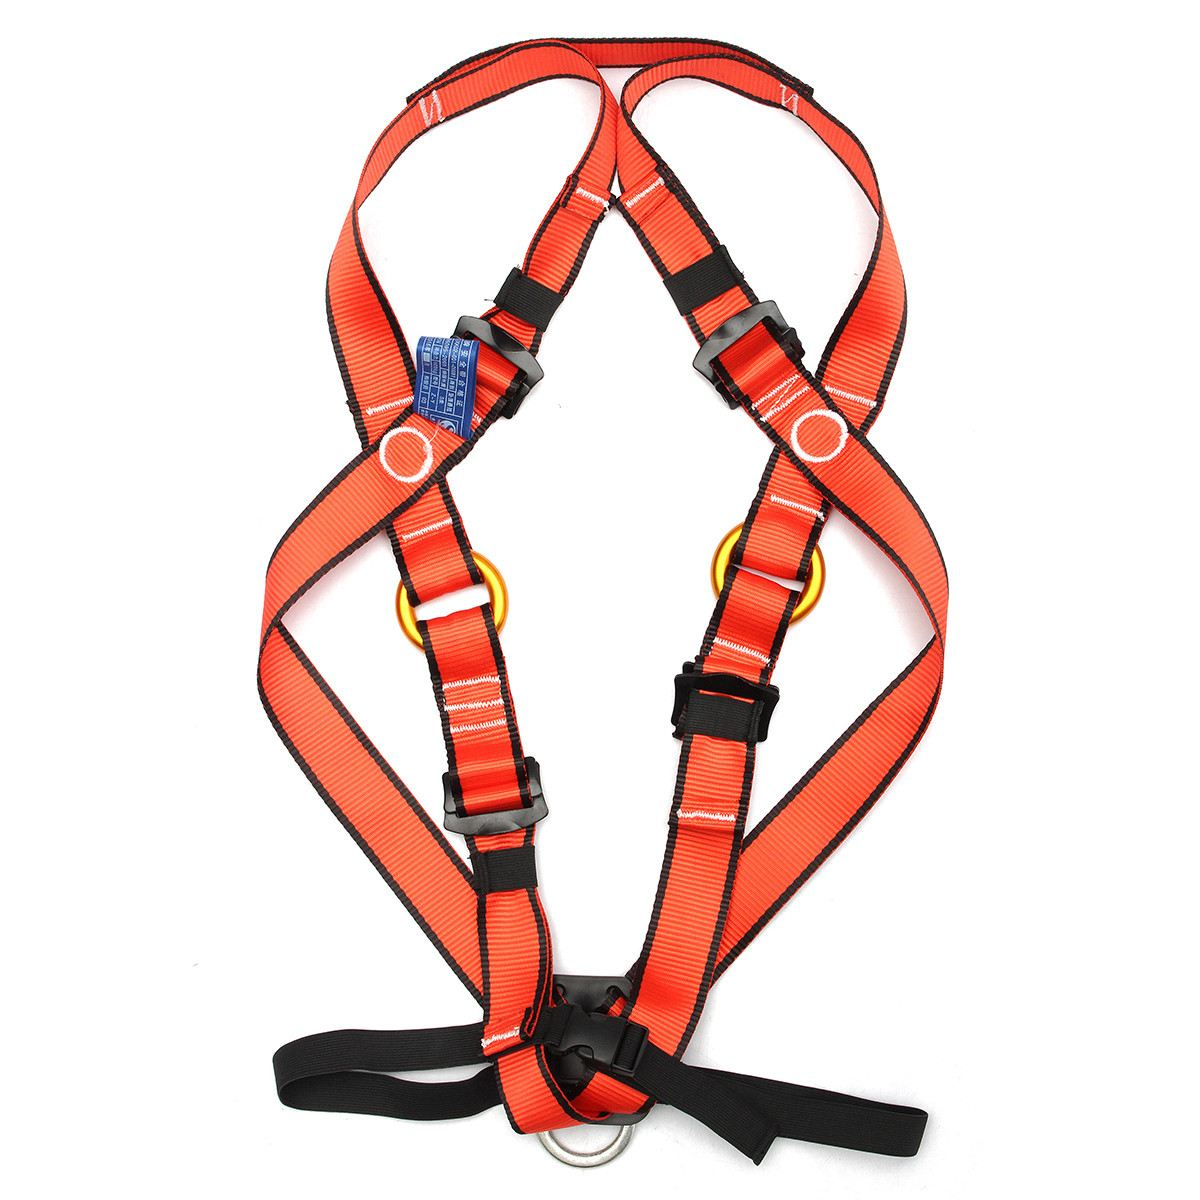 NEW Safurance 1pcs Kids Children Seat Belt Rock Climbing Protect Safety Harness for Outdoor Rock Rappelling equipment hot sale safety body harness outdoor mountaineering rock climbing harness protect waist seat belt outside multi tools